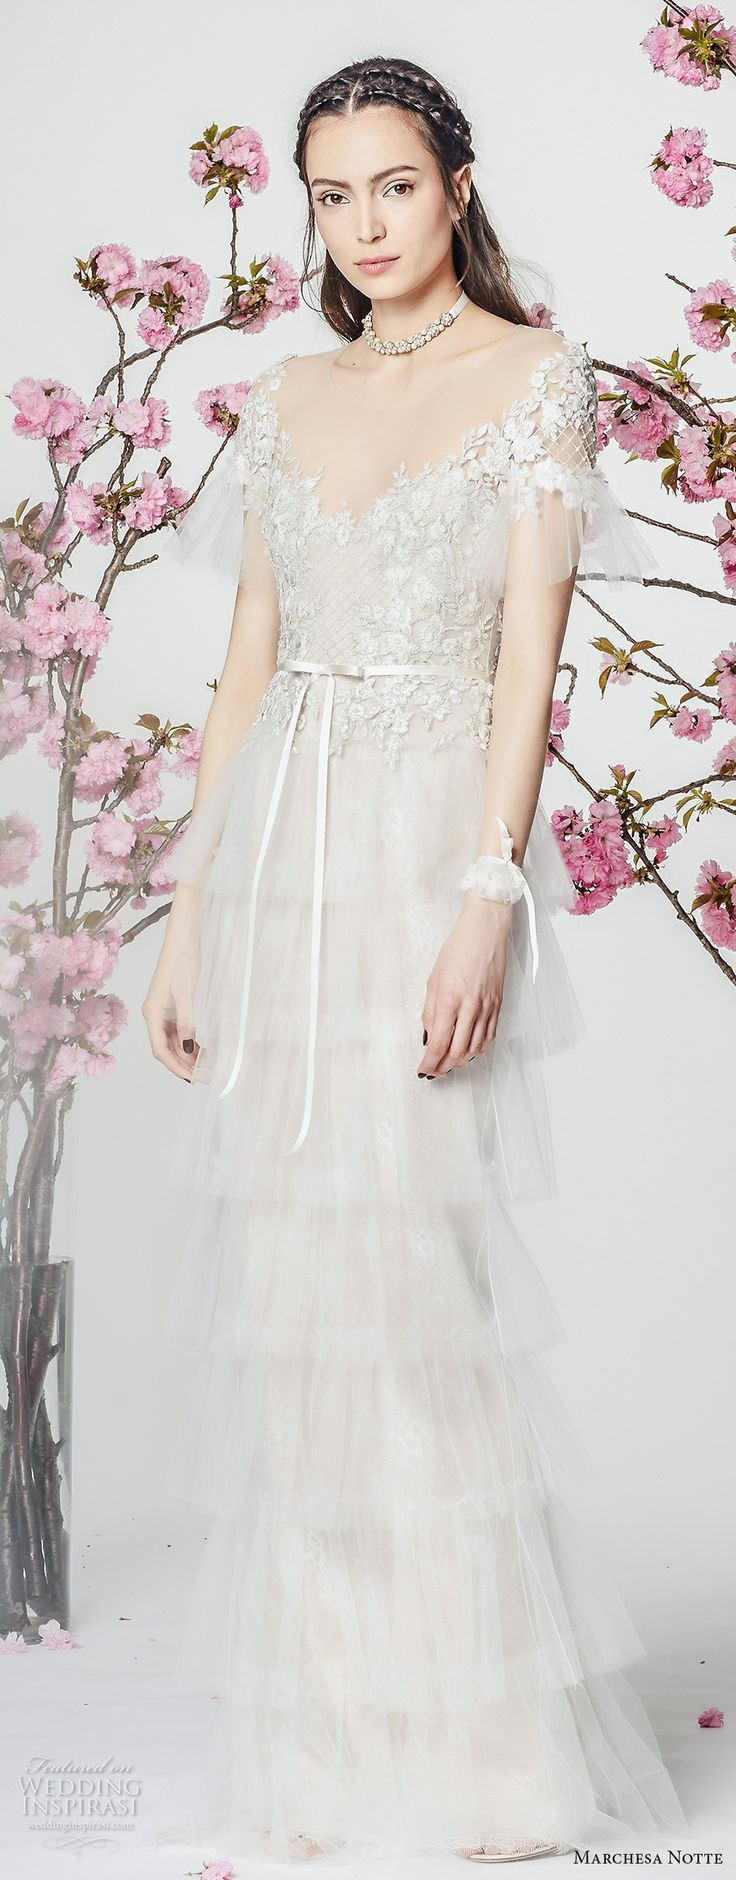 marchesa notte spring 2018 bridal short sleeves scoop neckline heavily embellished bodice layered skirt romantic column wedding dress (9) mv -- Marchesa Notte Spring 2018 Wedding Dresses